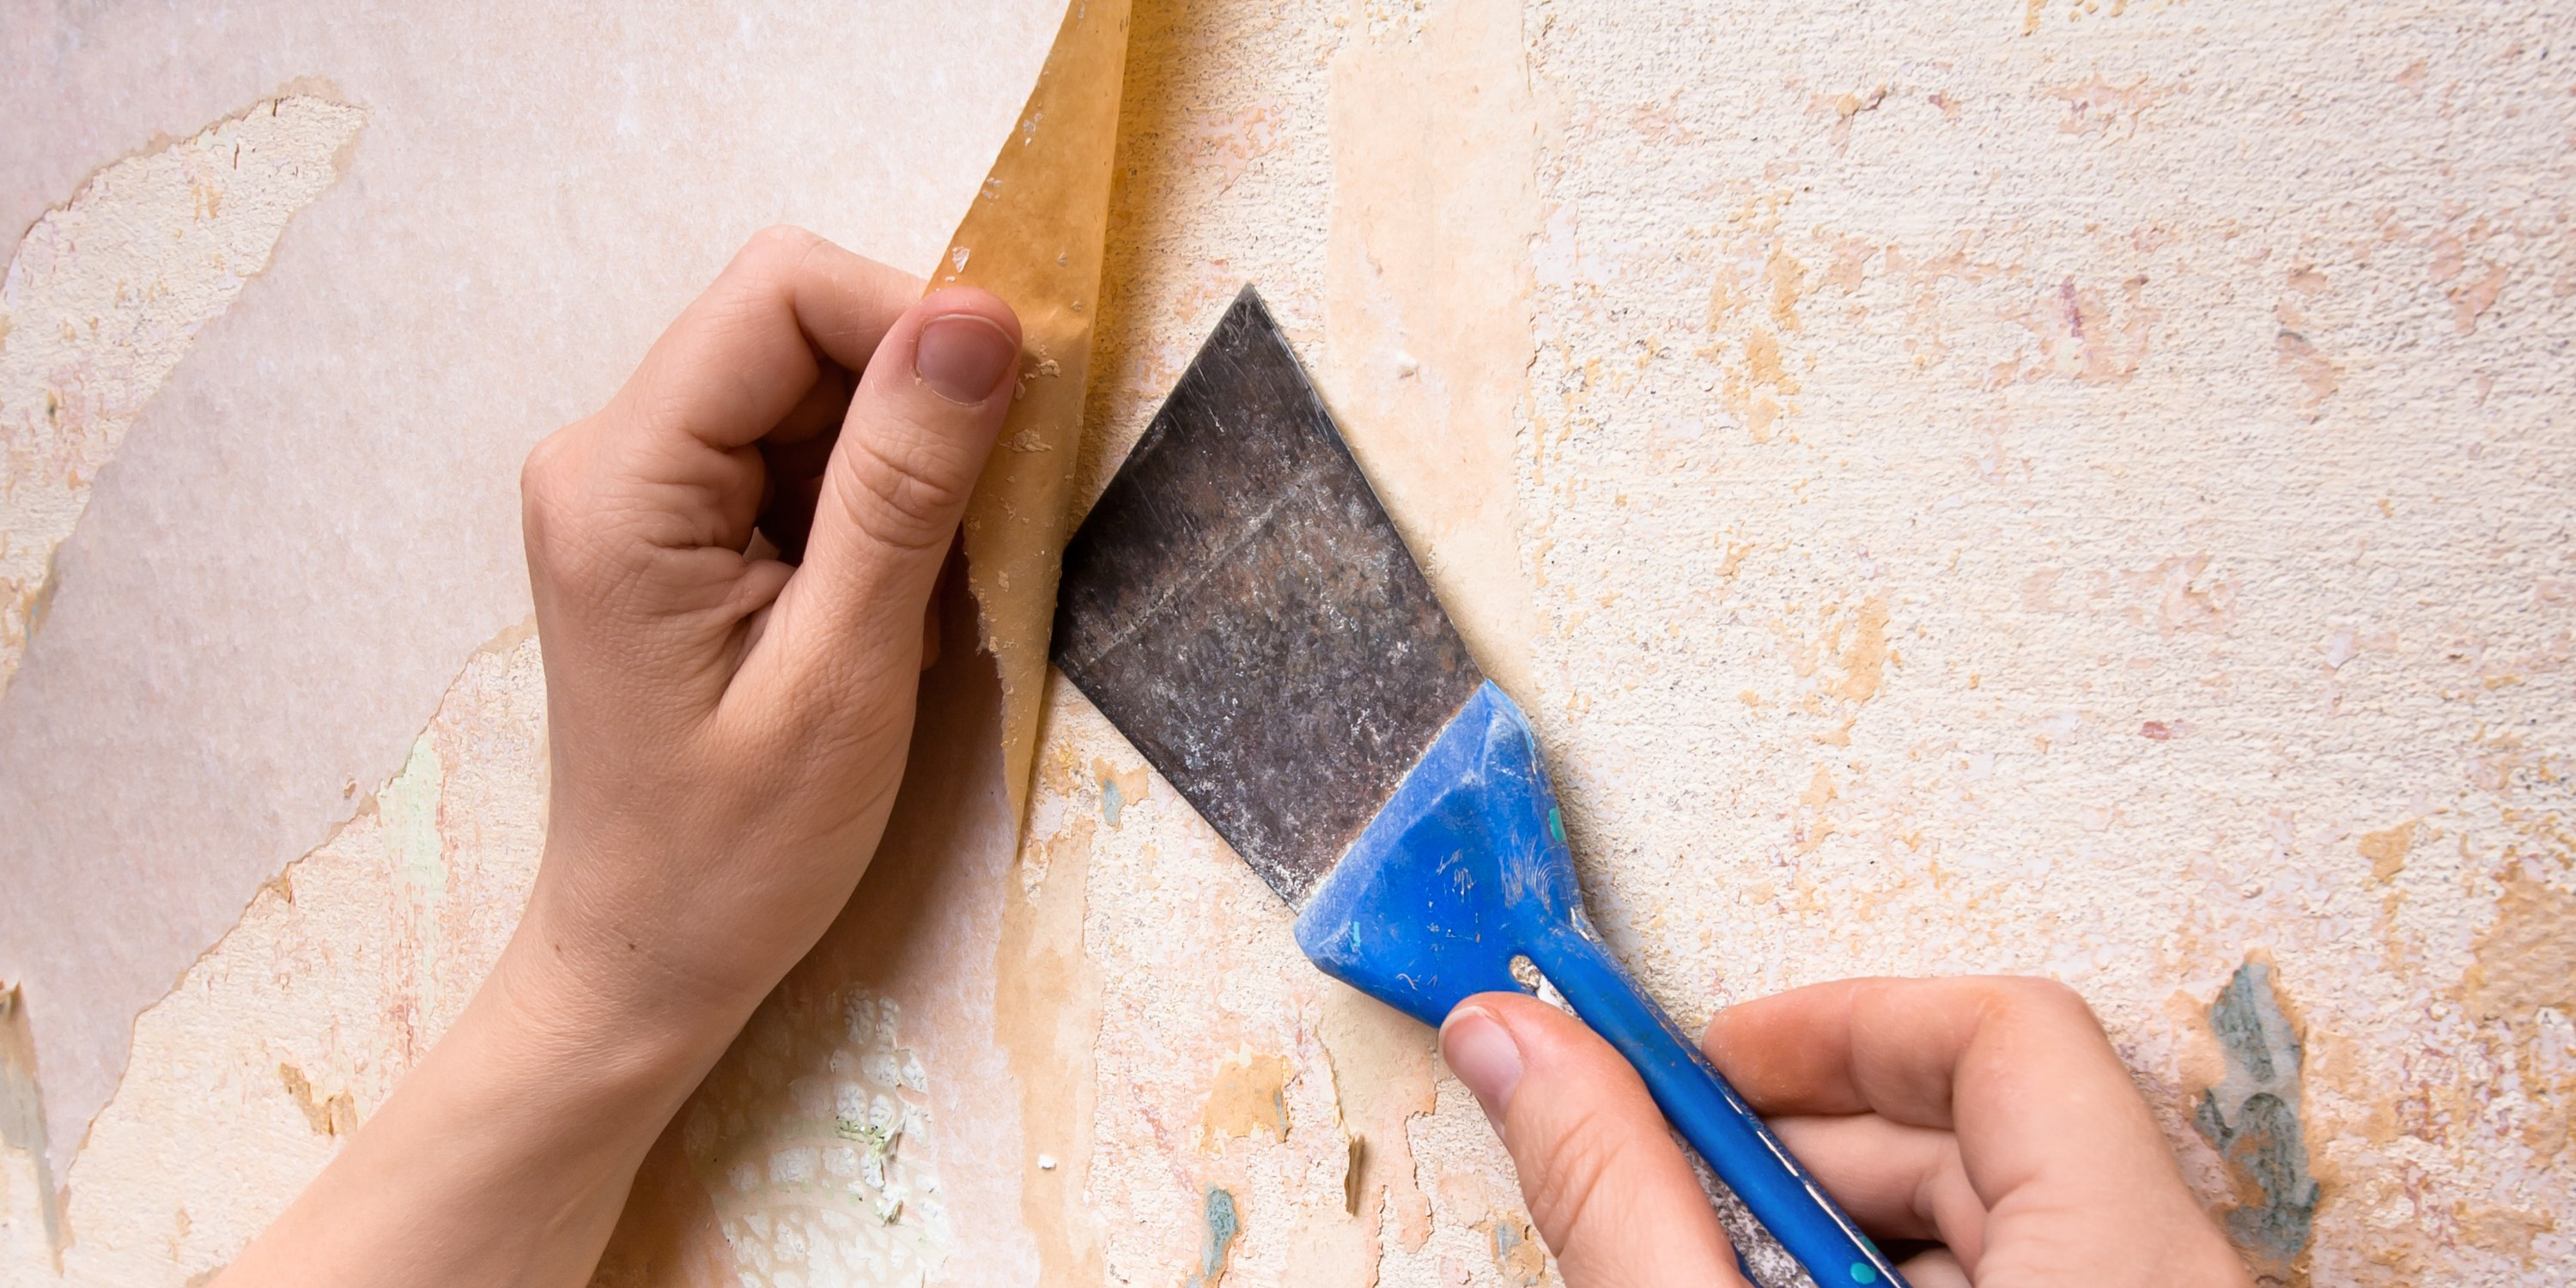 How To Remove Wallpaper Glue in 5 Simple Steps Architectural Digest 3000x1500